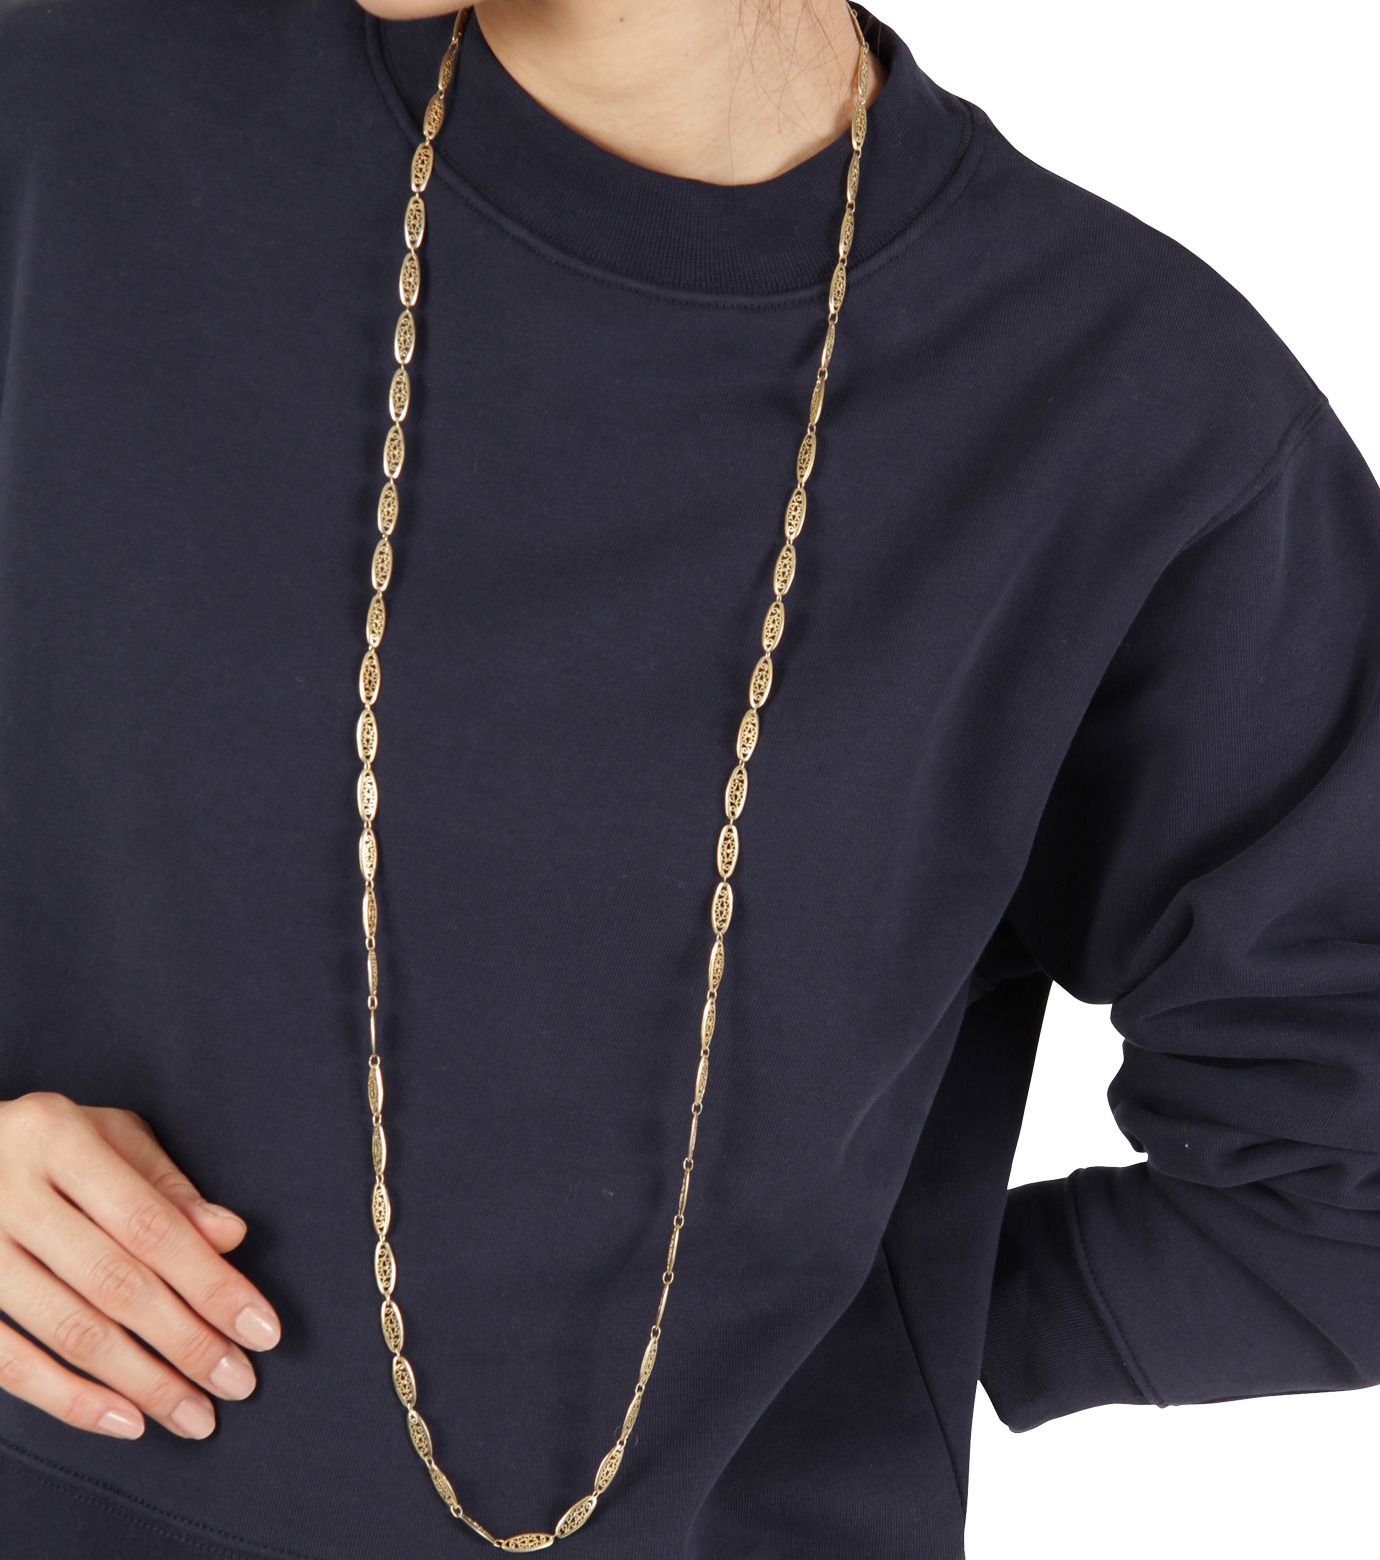 I AM by Ileana Makri(アイ アム バイ イリーナ マクリ)のChantilly Single Necklace Ellipse-GOLD(ネックレス/necklace)-O842-61-099-2 拡大詳細画像3